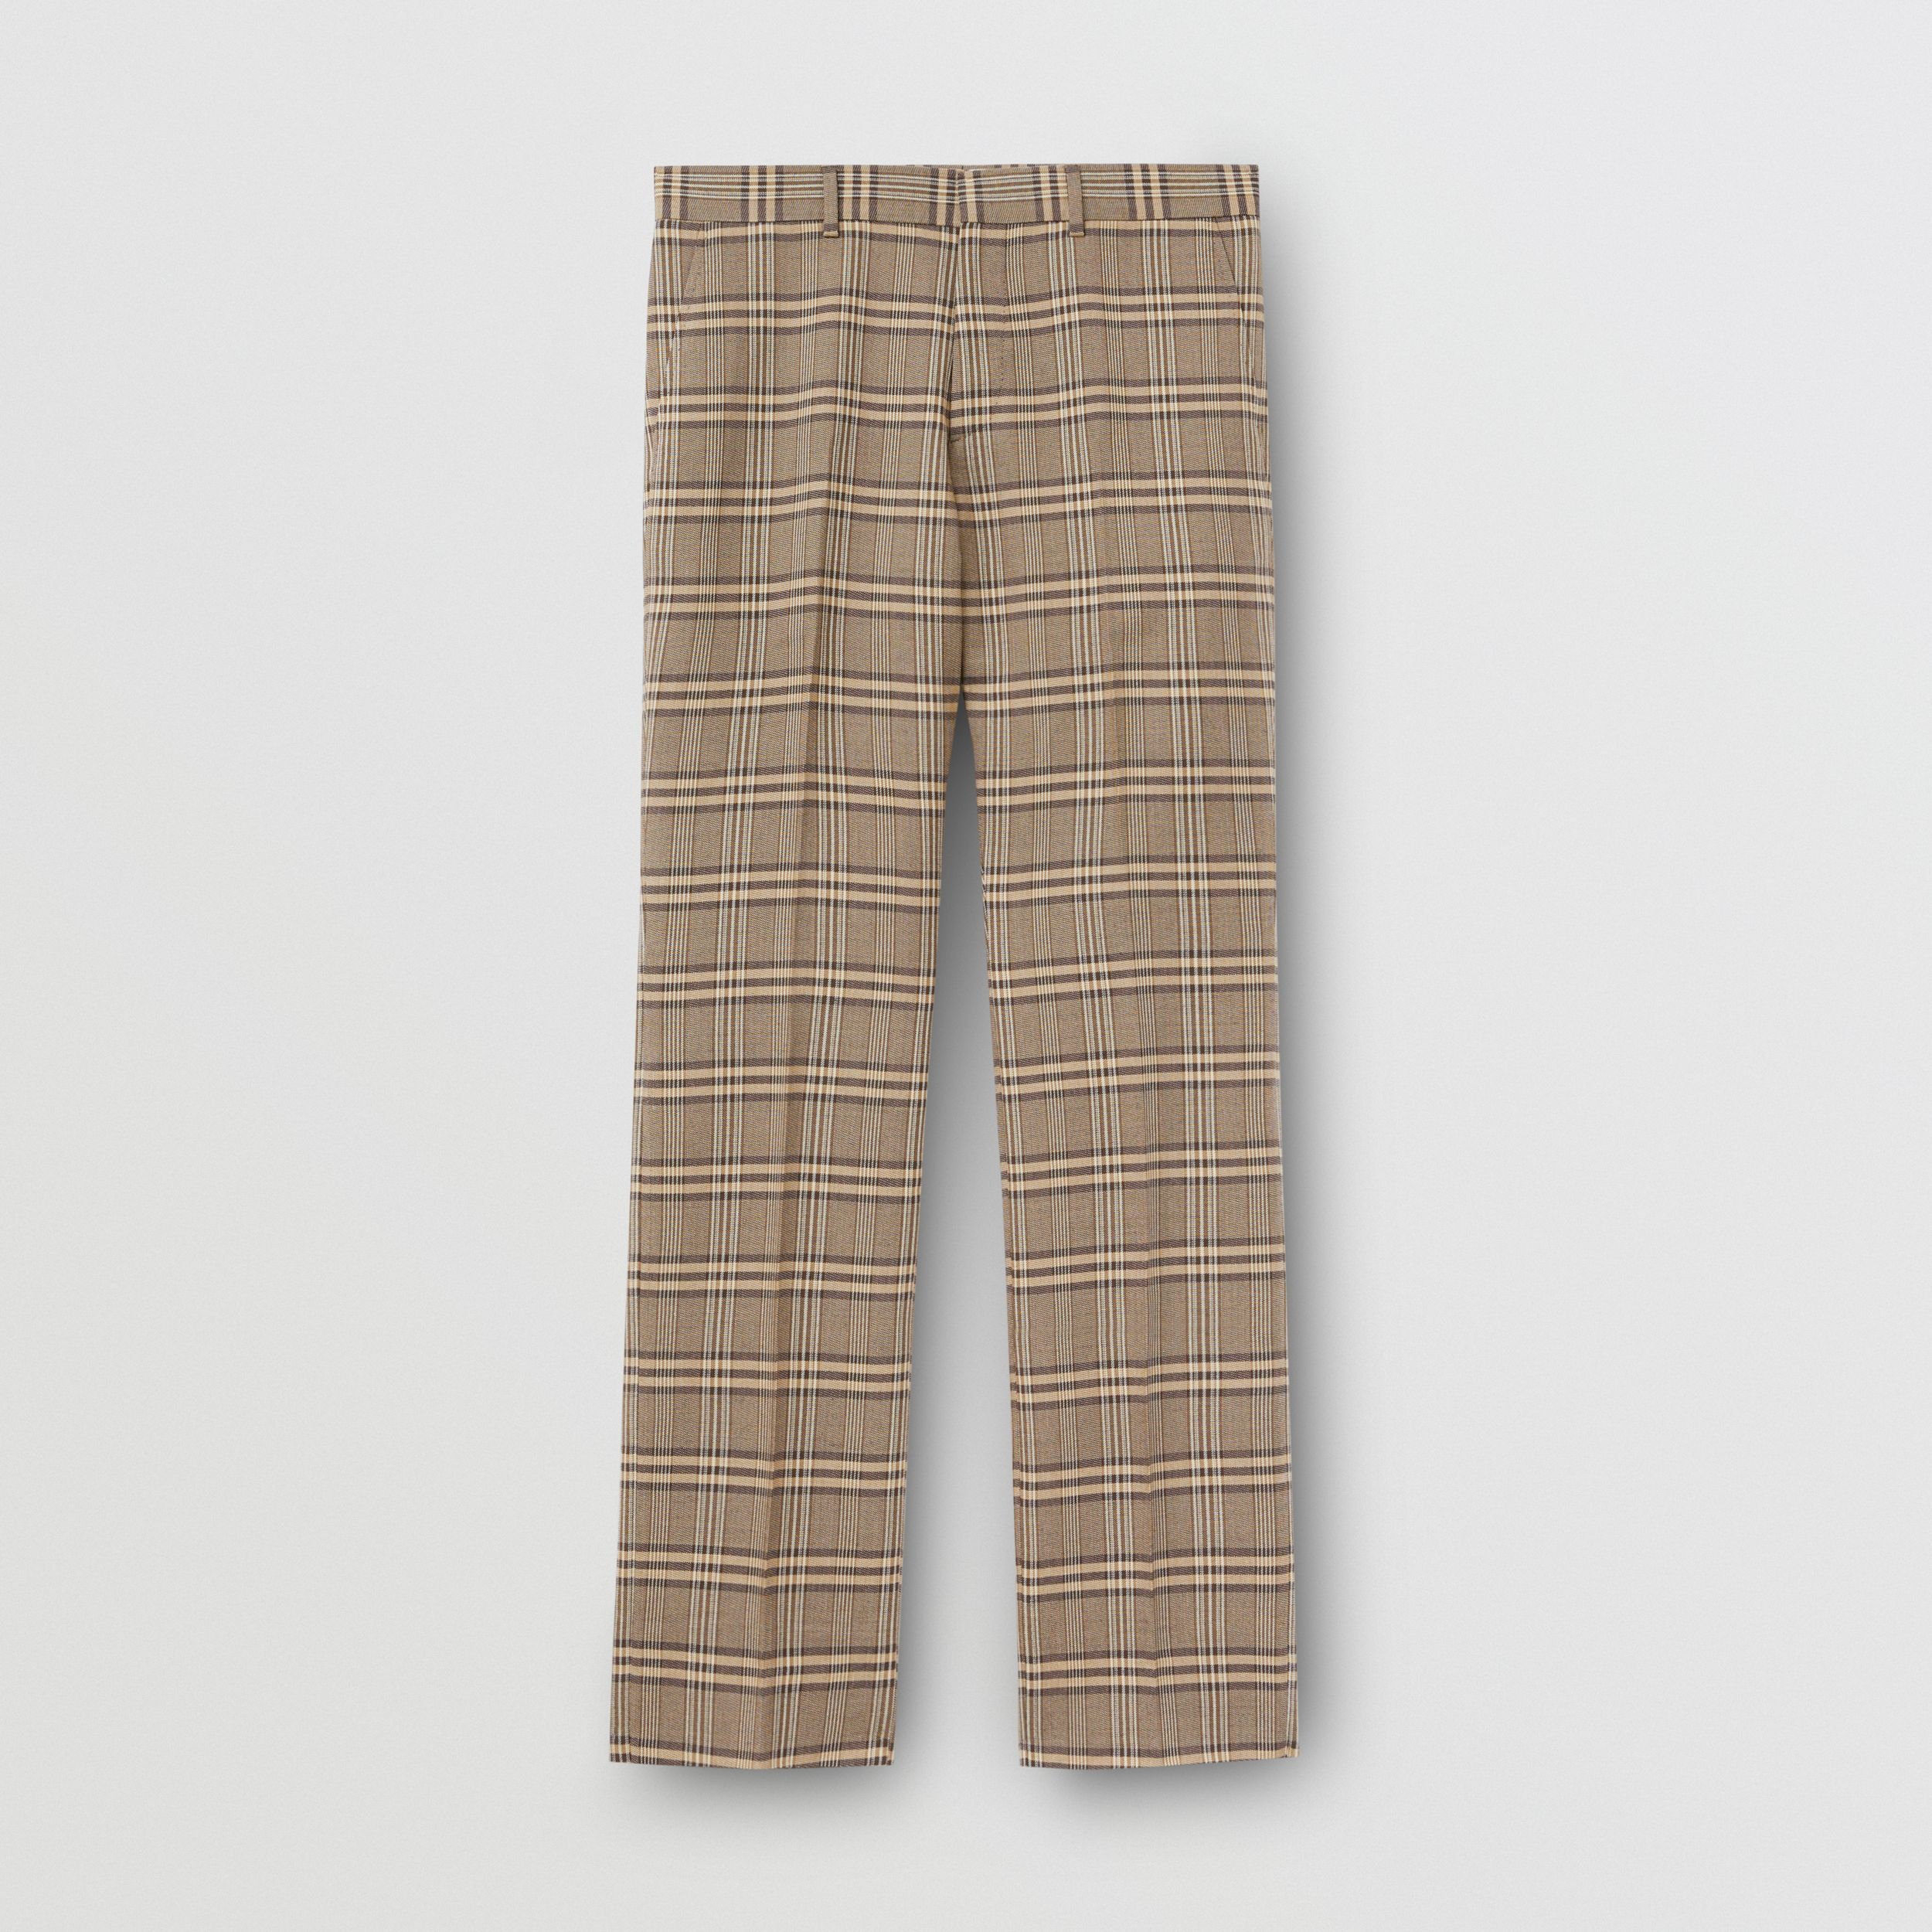 Prince of Wales Check Wool Silk Tailored Trousers in Dusty Caramel - Men | Burberry - 4